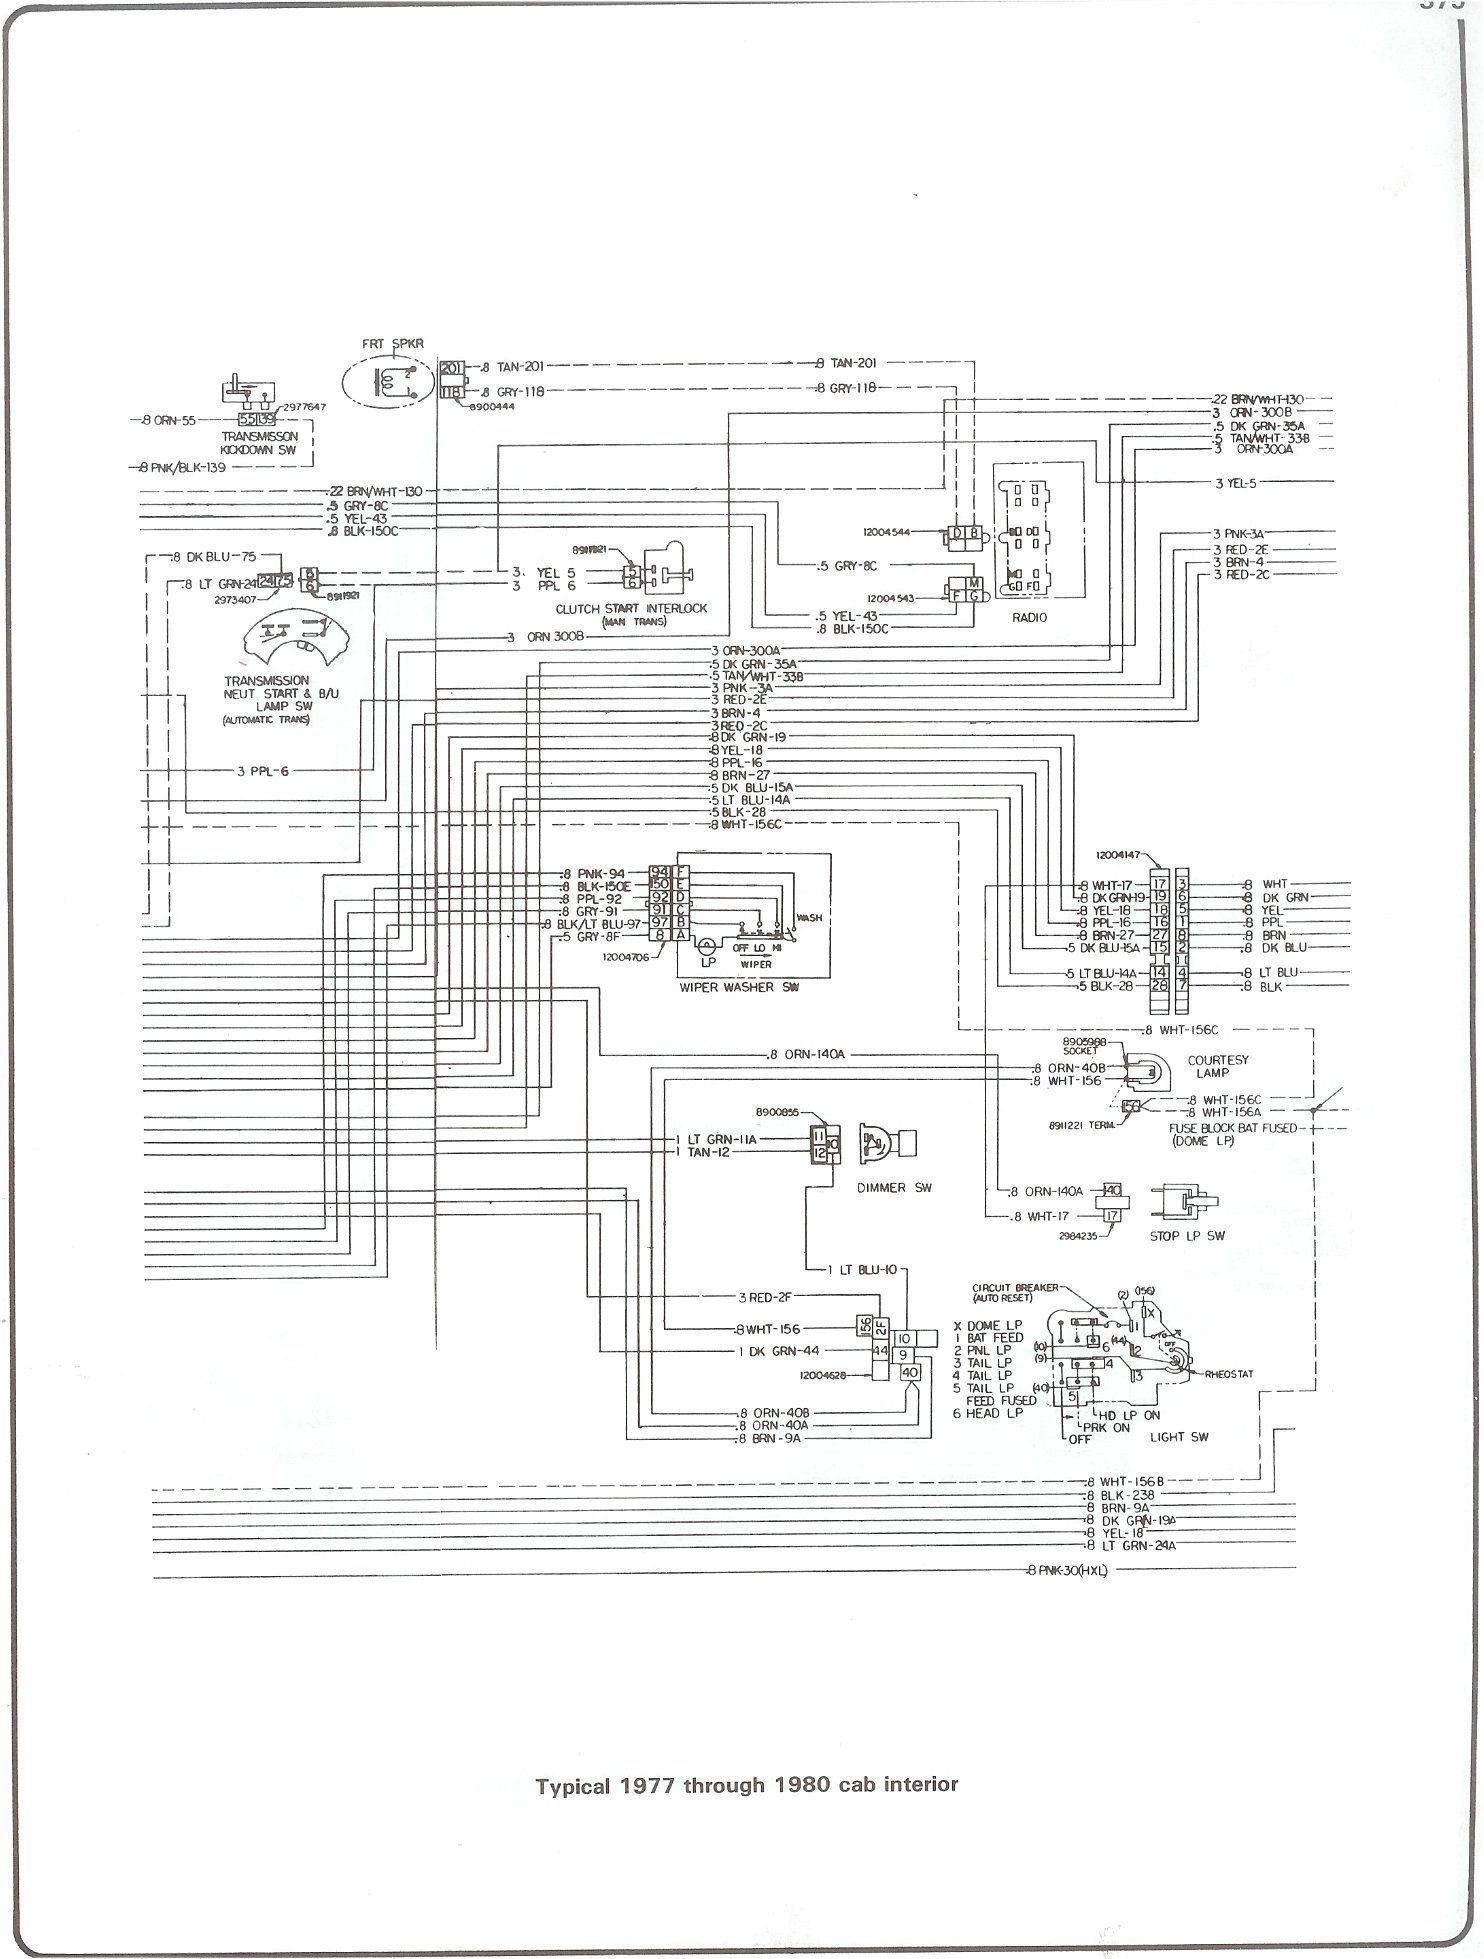 1968 El Camino Wiper Switch Wiring Diagram Library Camaro Ignition Complete 73 87 Diagrams 68 Motor C10